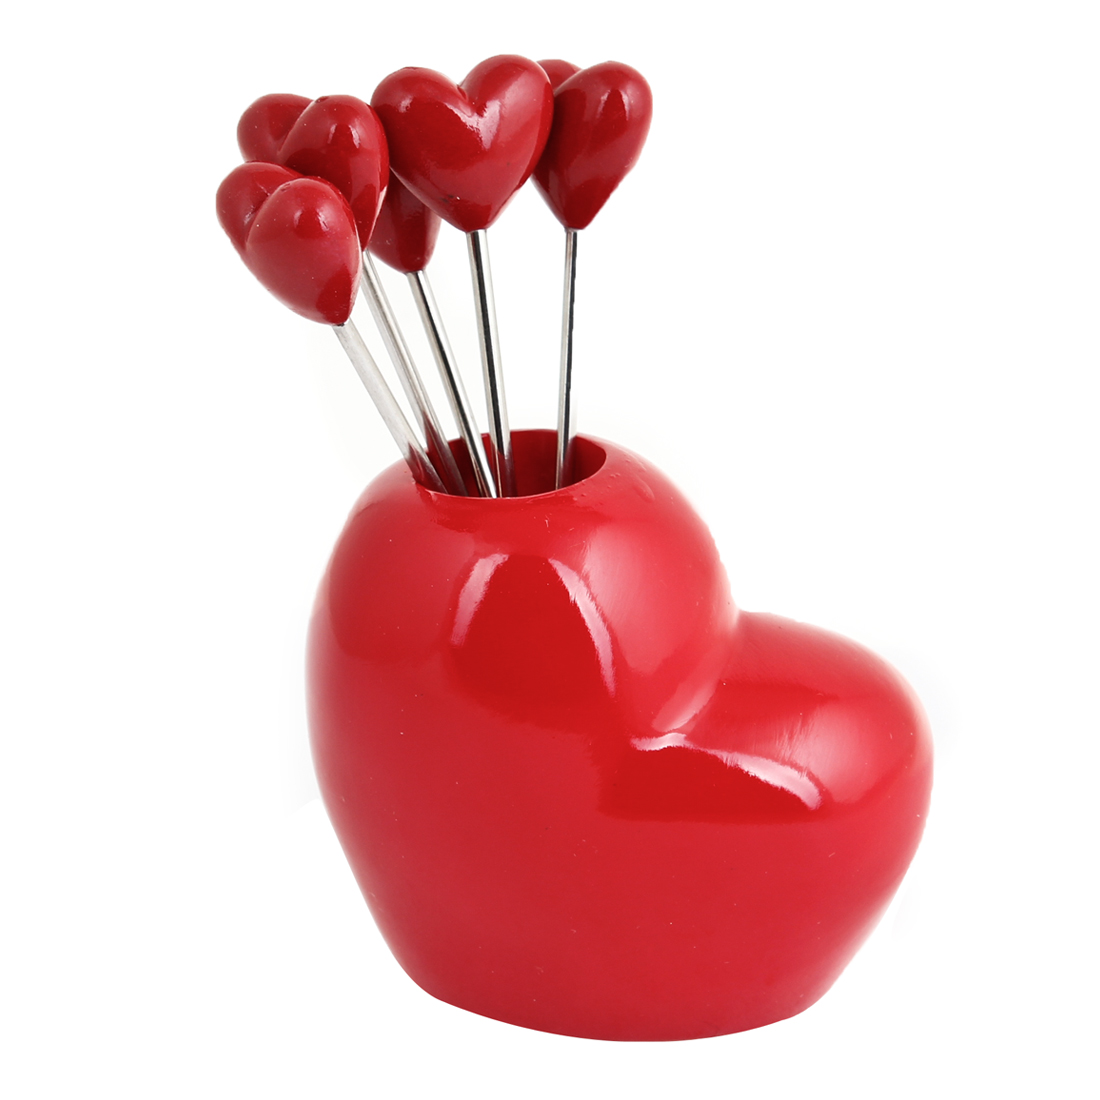 5 Pcs Household Red Heart Shaped Head Fruit Forks w Holder